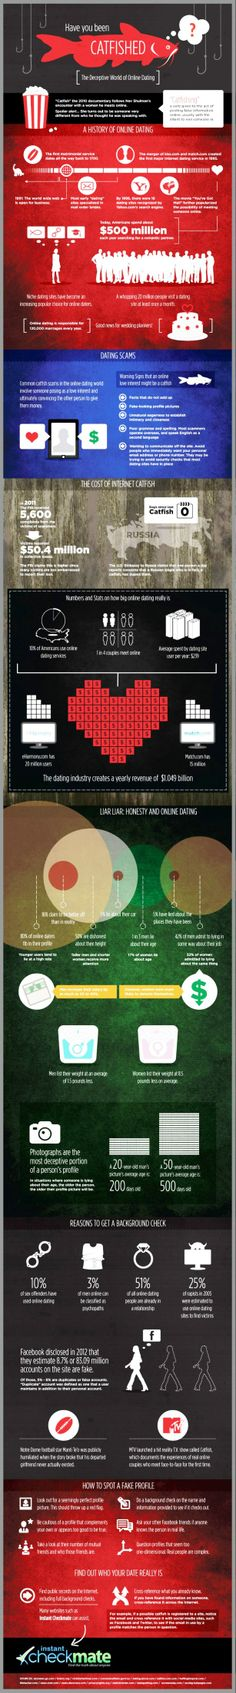 have you been catfished #infographic